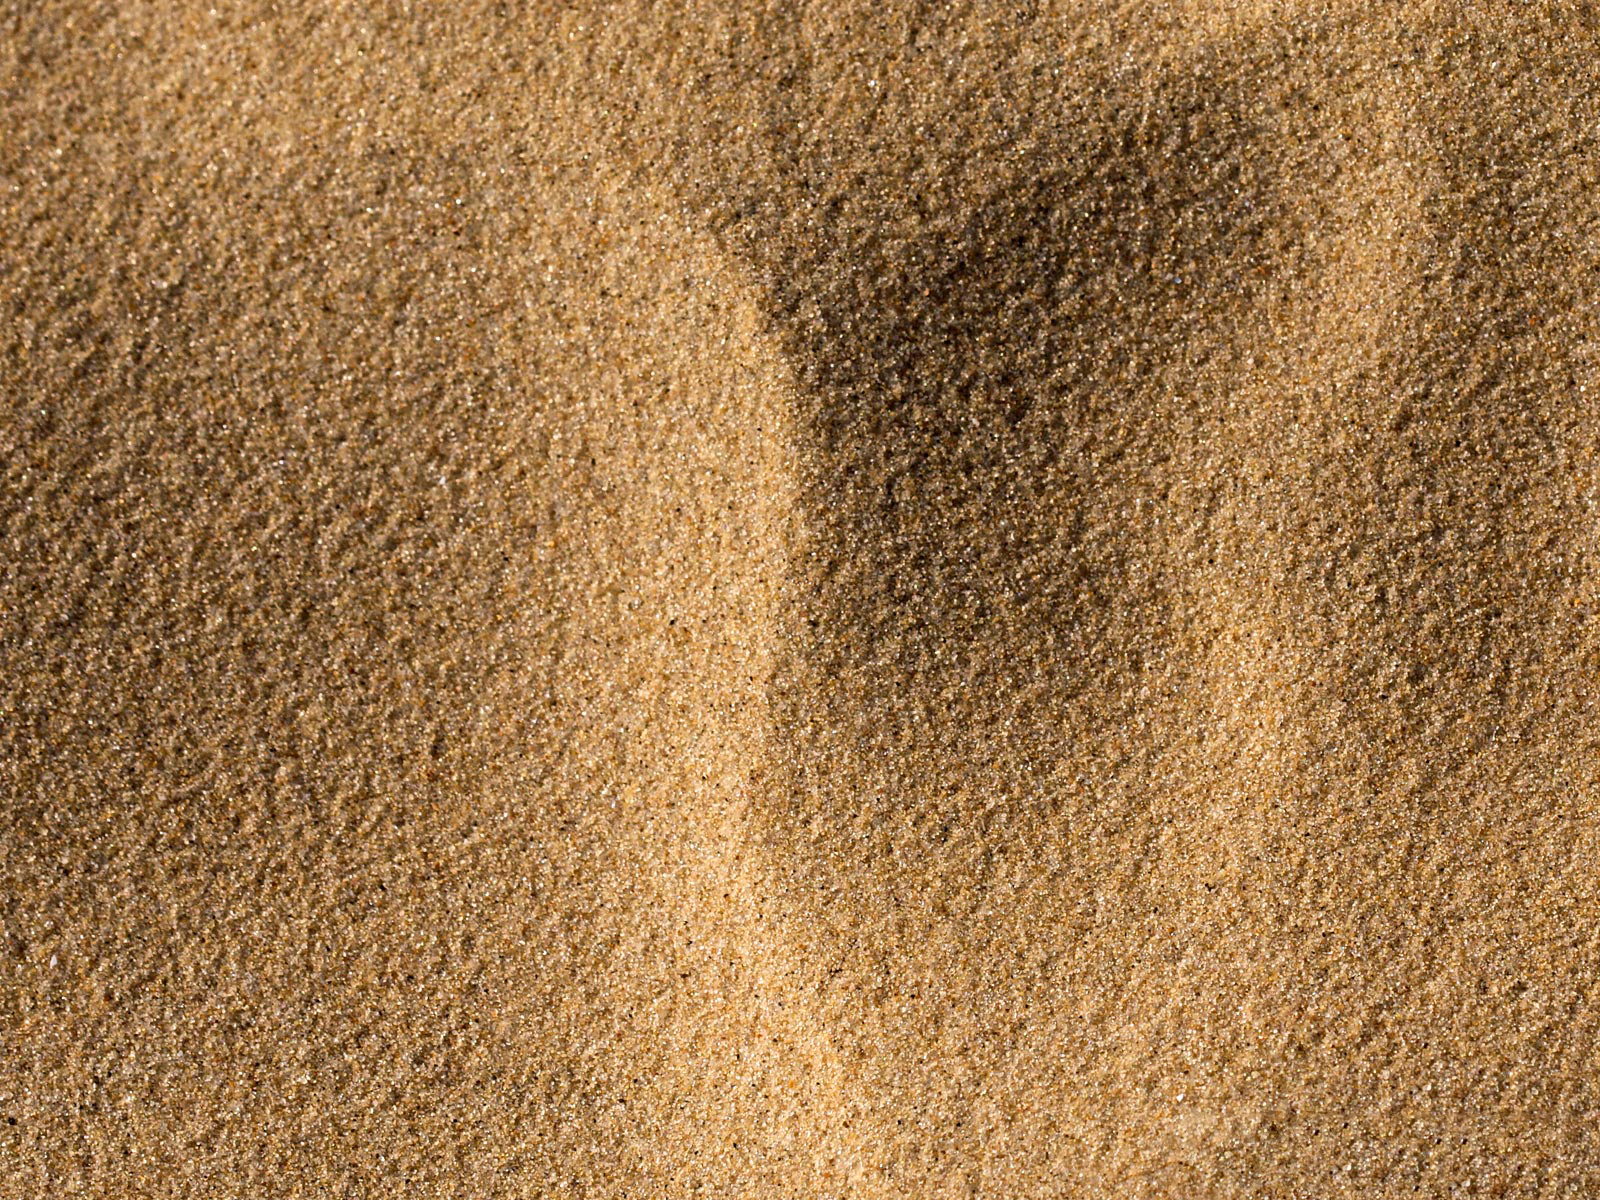 sand texture, sand, texture sand, beach, background, background ...